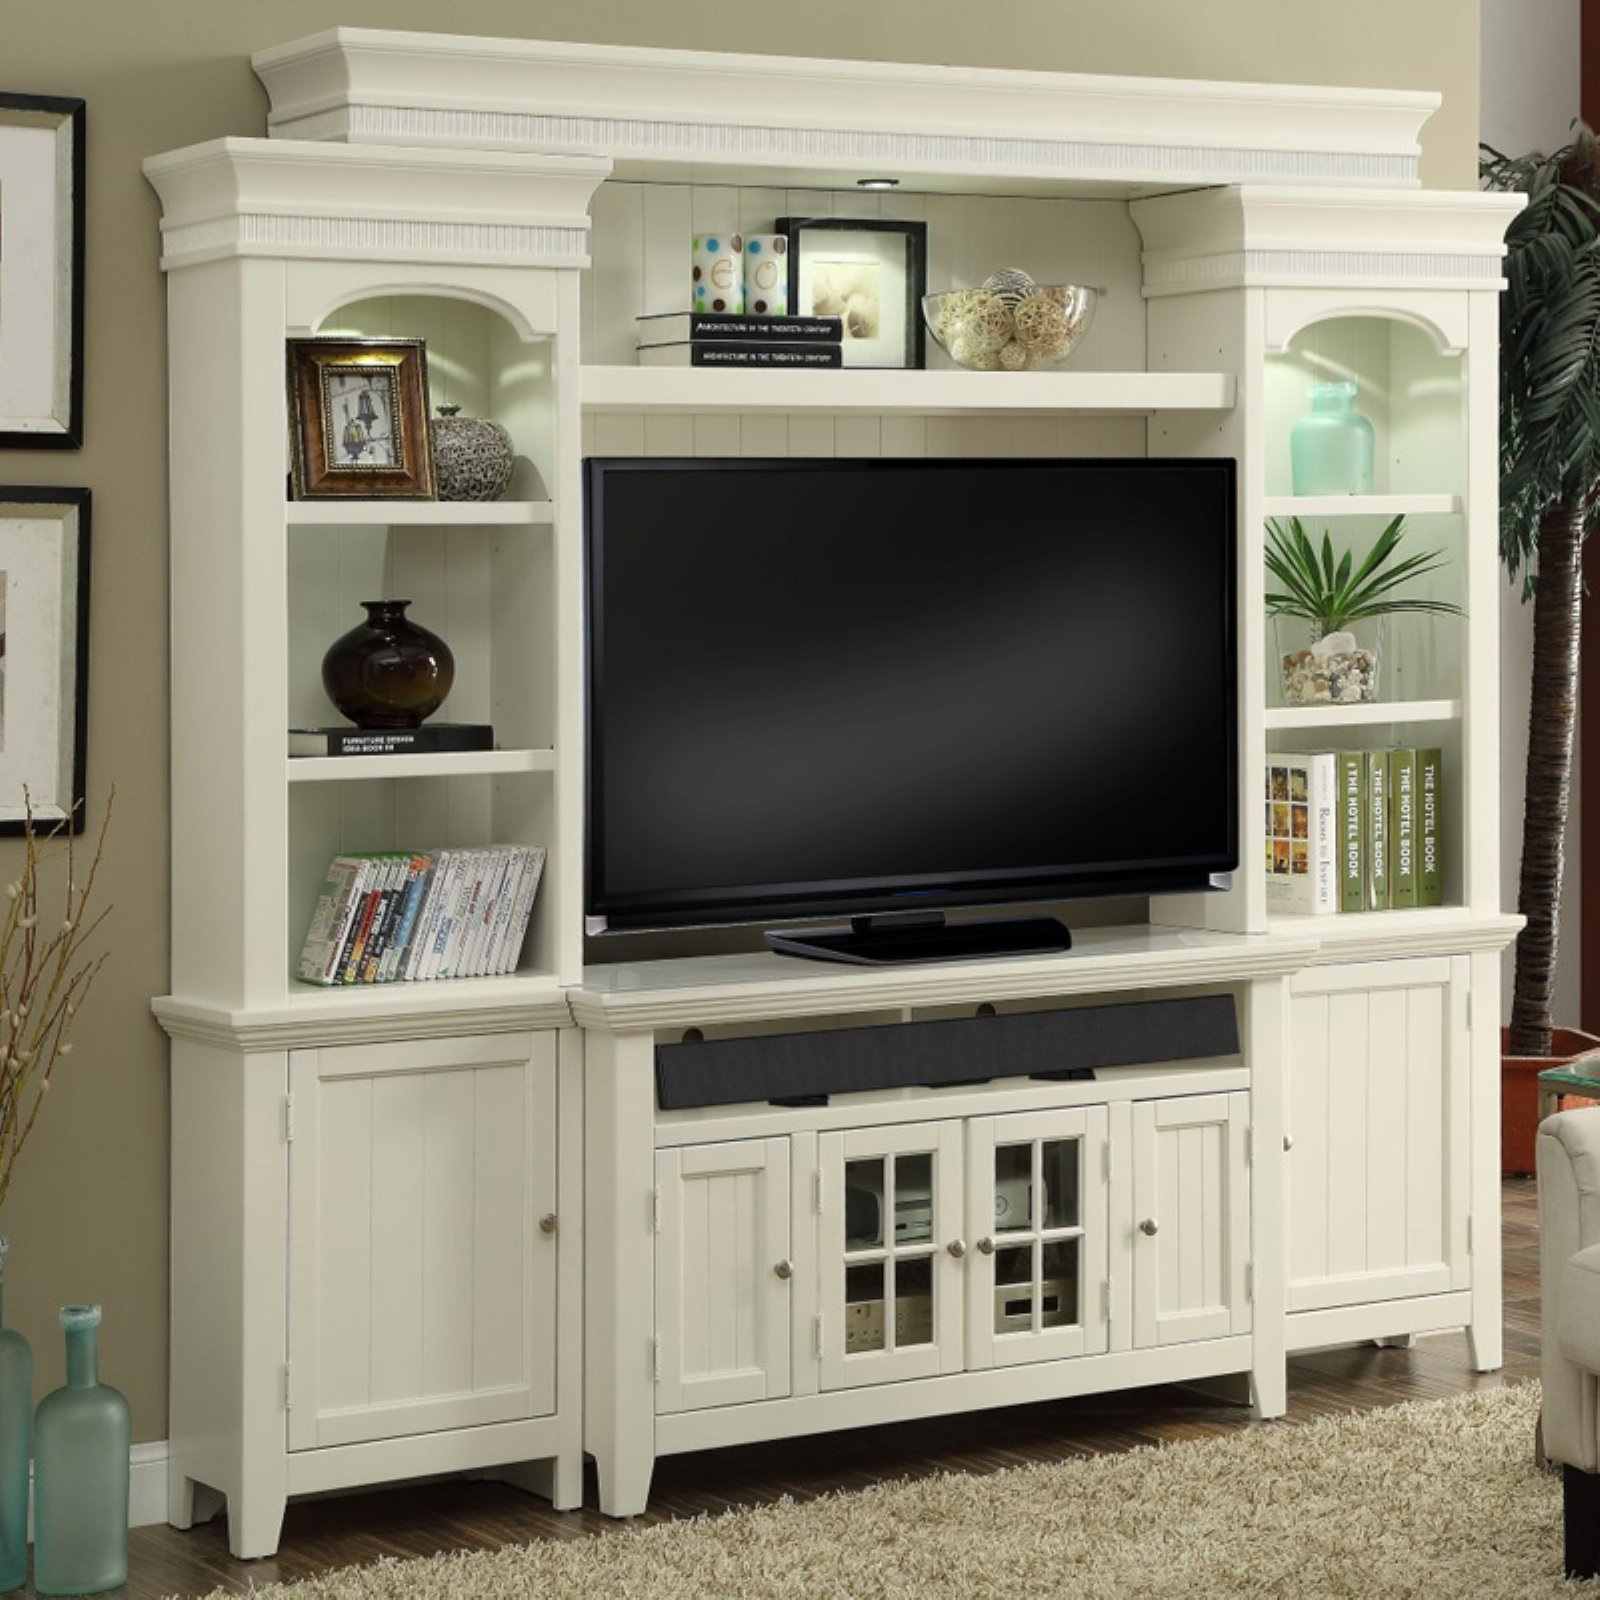 Parker House Tidewater 50 in. Entertainment Center